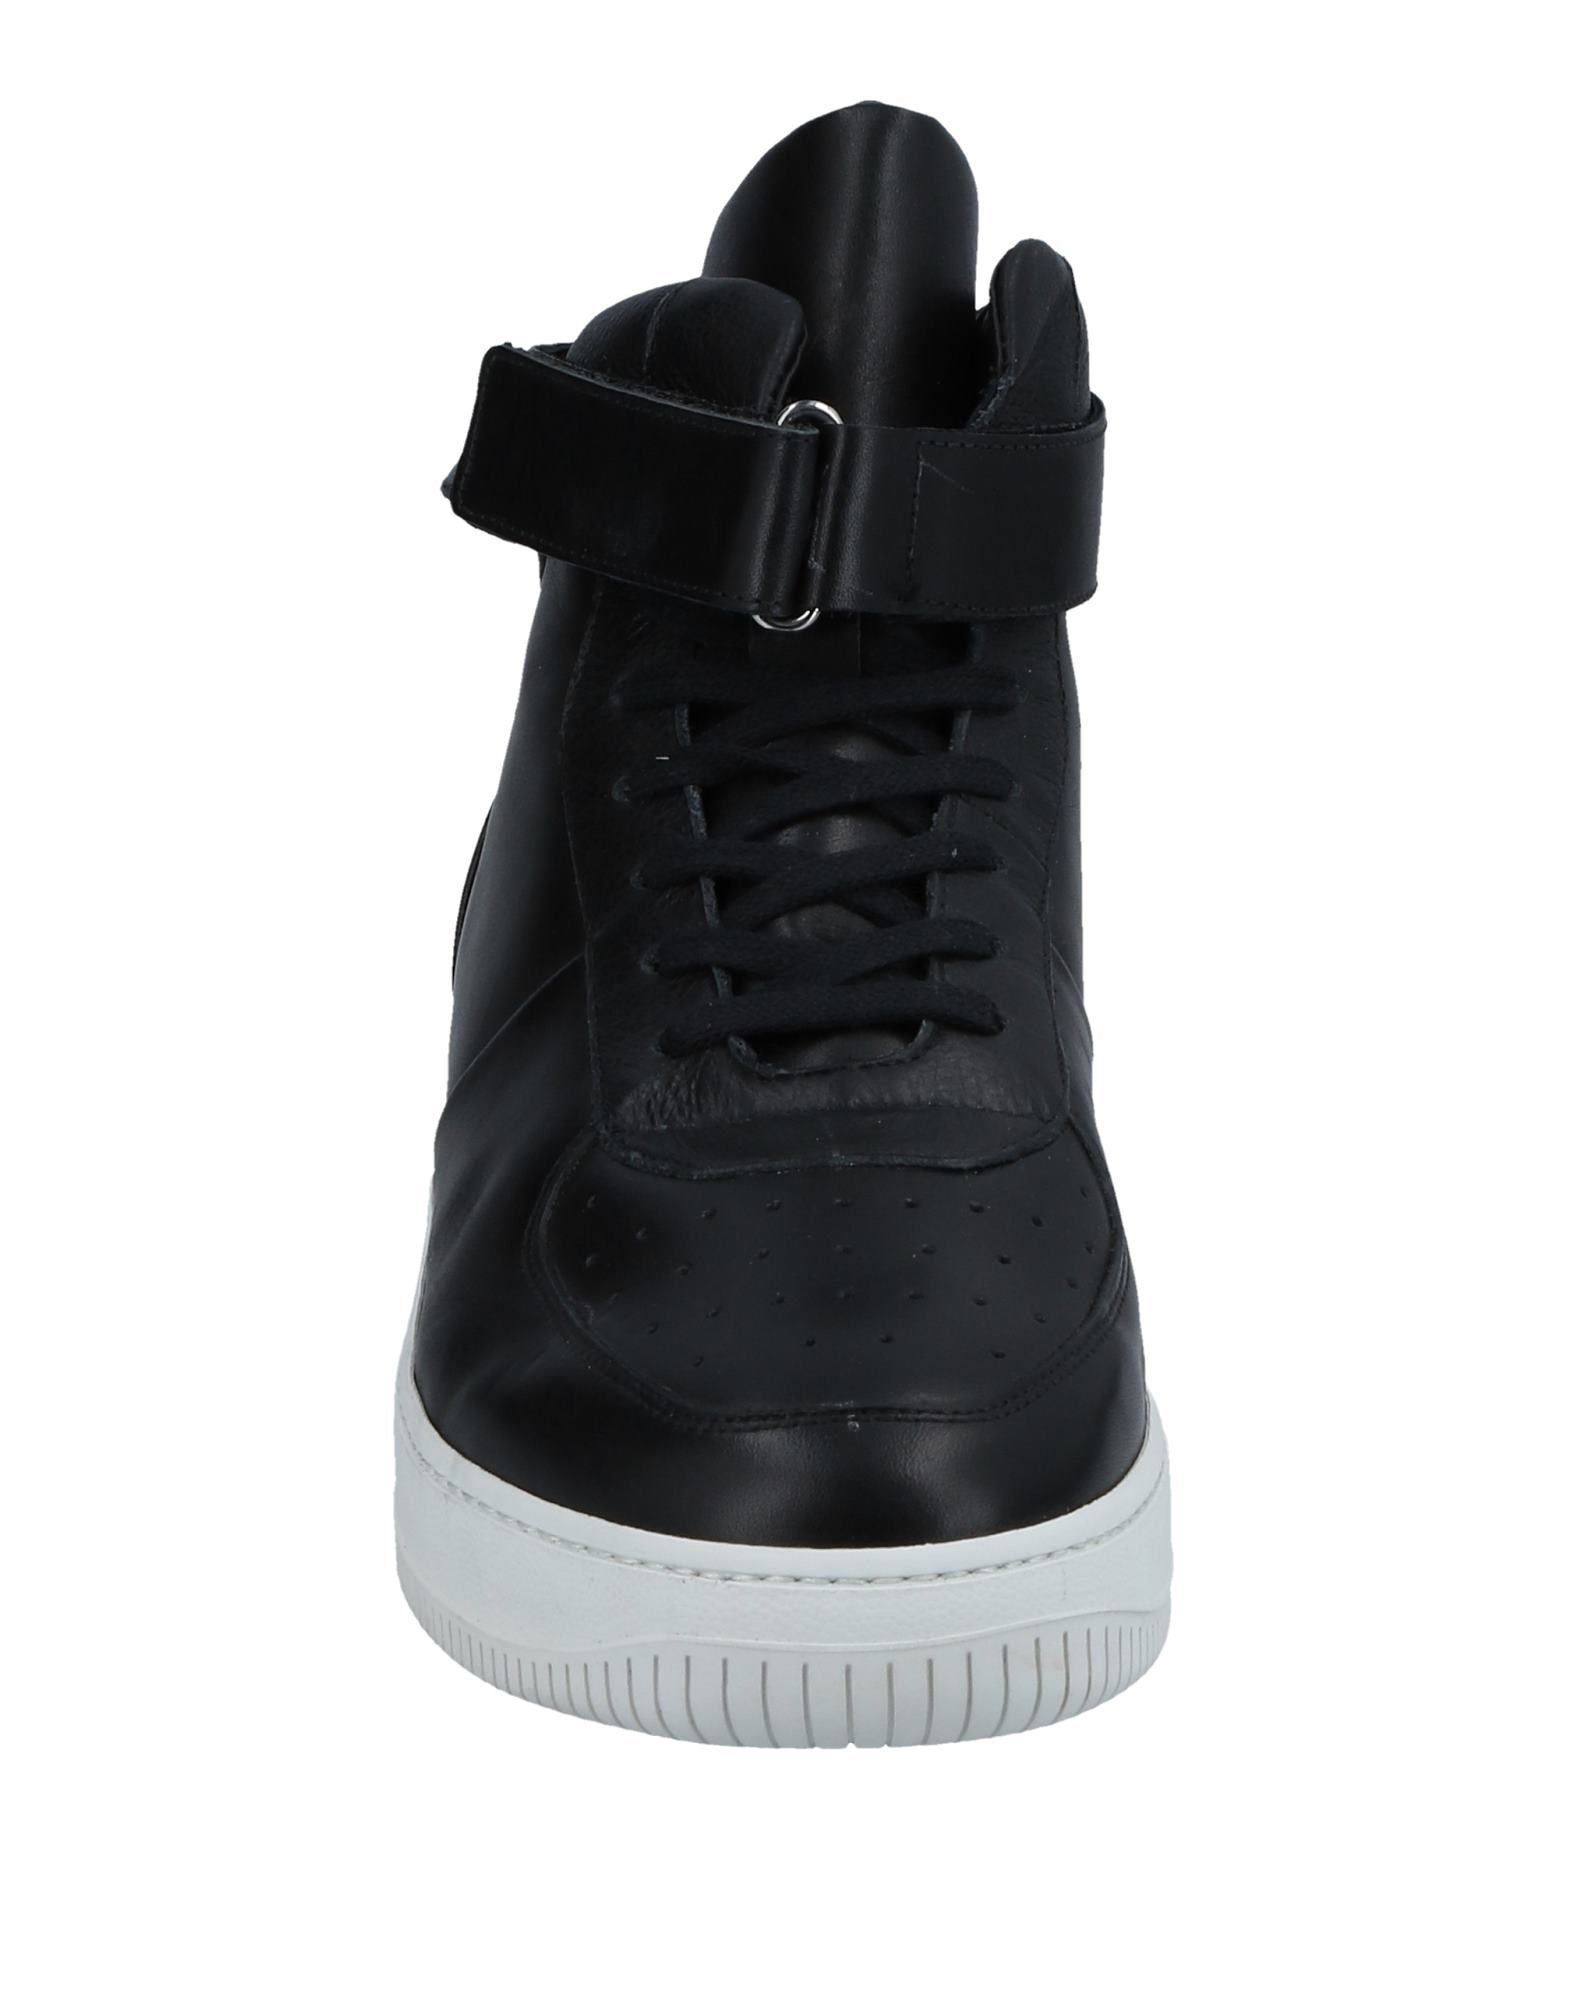 Rabatt echte Schuhe Sneakers Am/Pm By Bottega Backdoor Sneakers Schuhe Herren  11030383FV 51a9f0